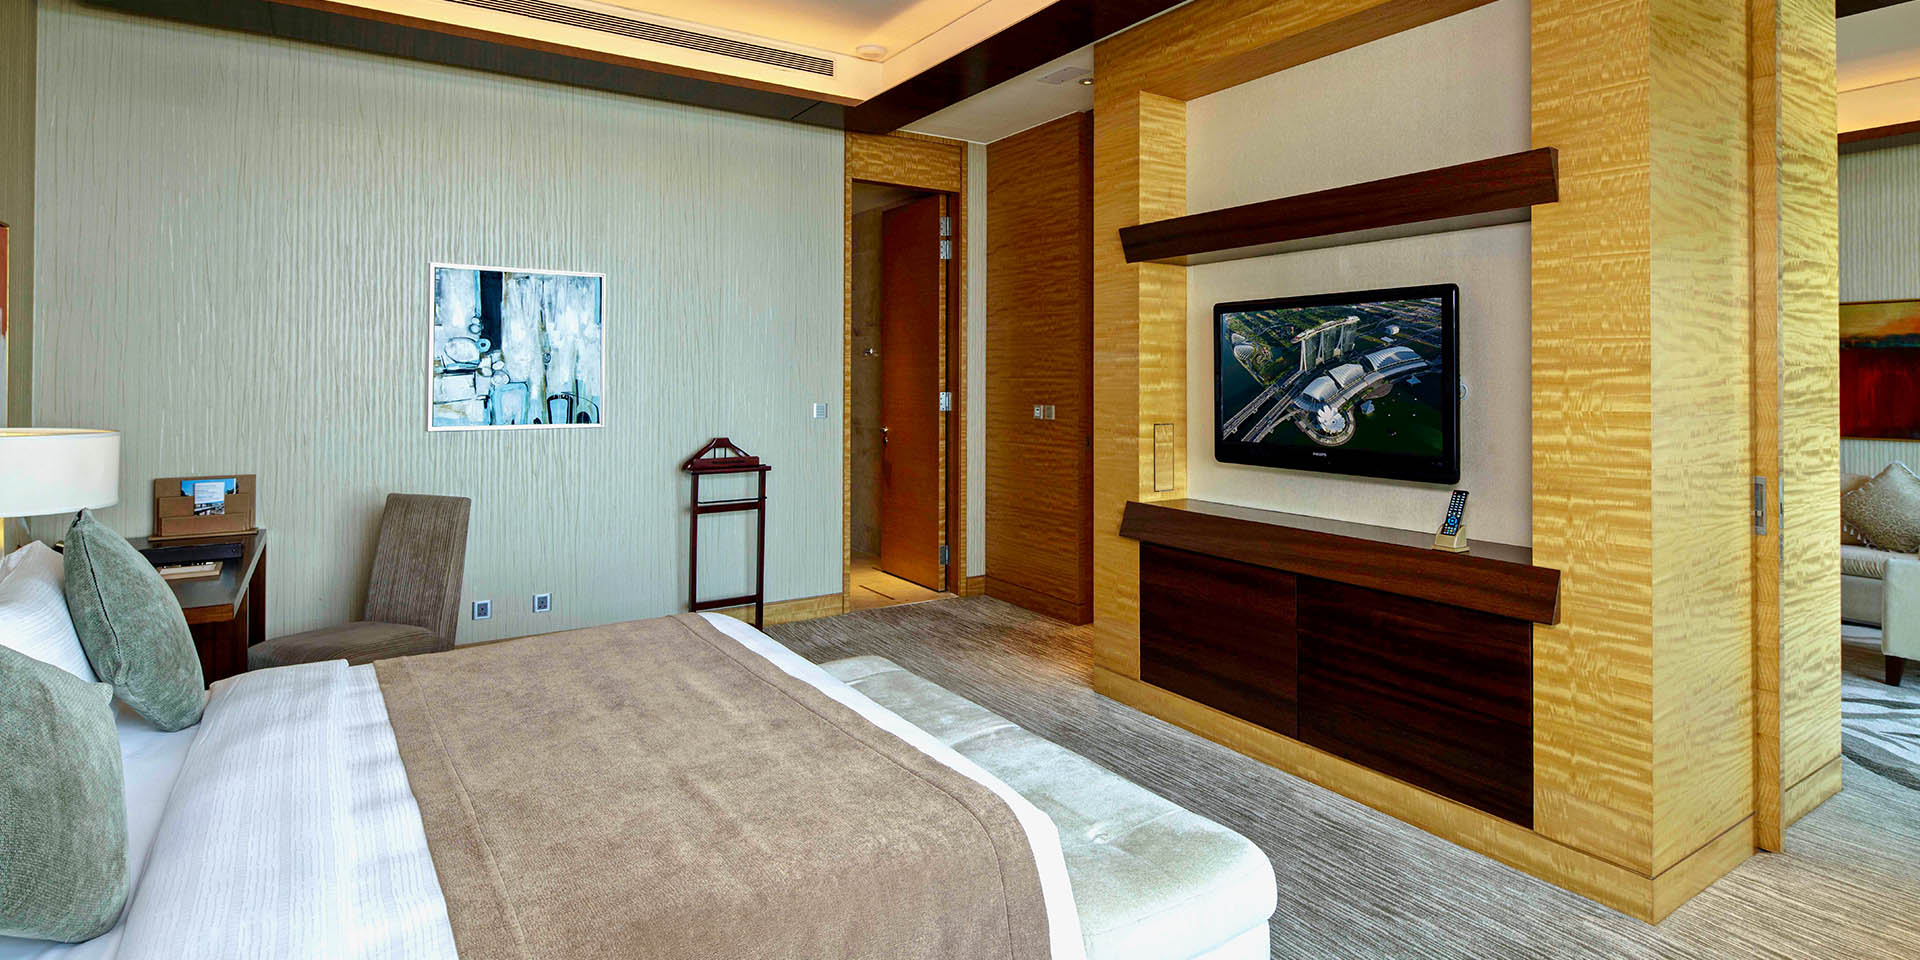 Harbour Suite Bedroom at Marina Bay Sands with King Bed and City View